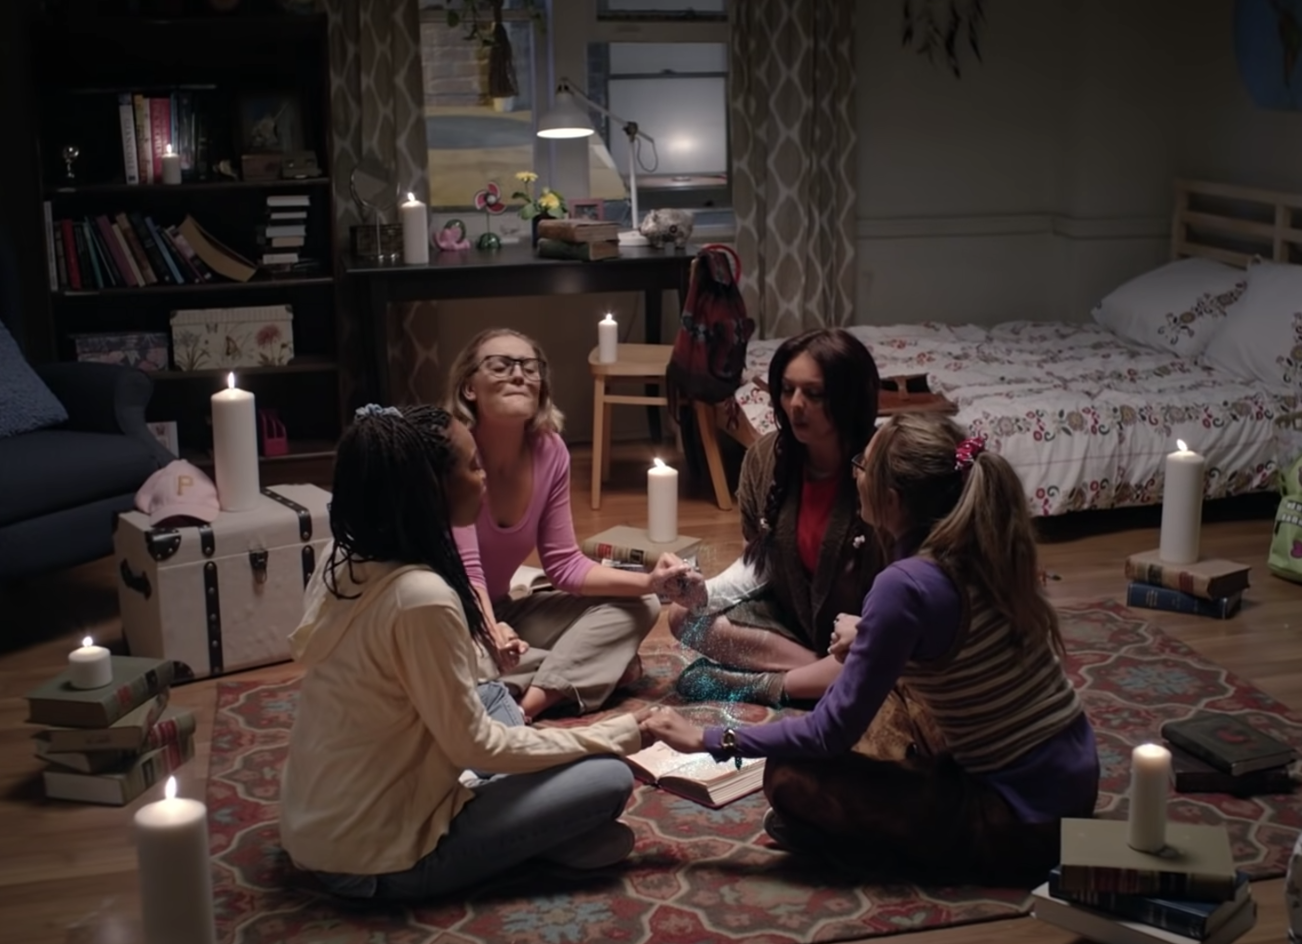 The girls holding hands and doing a spell in the music video